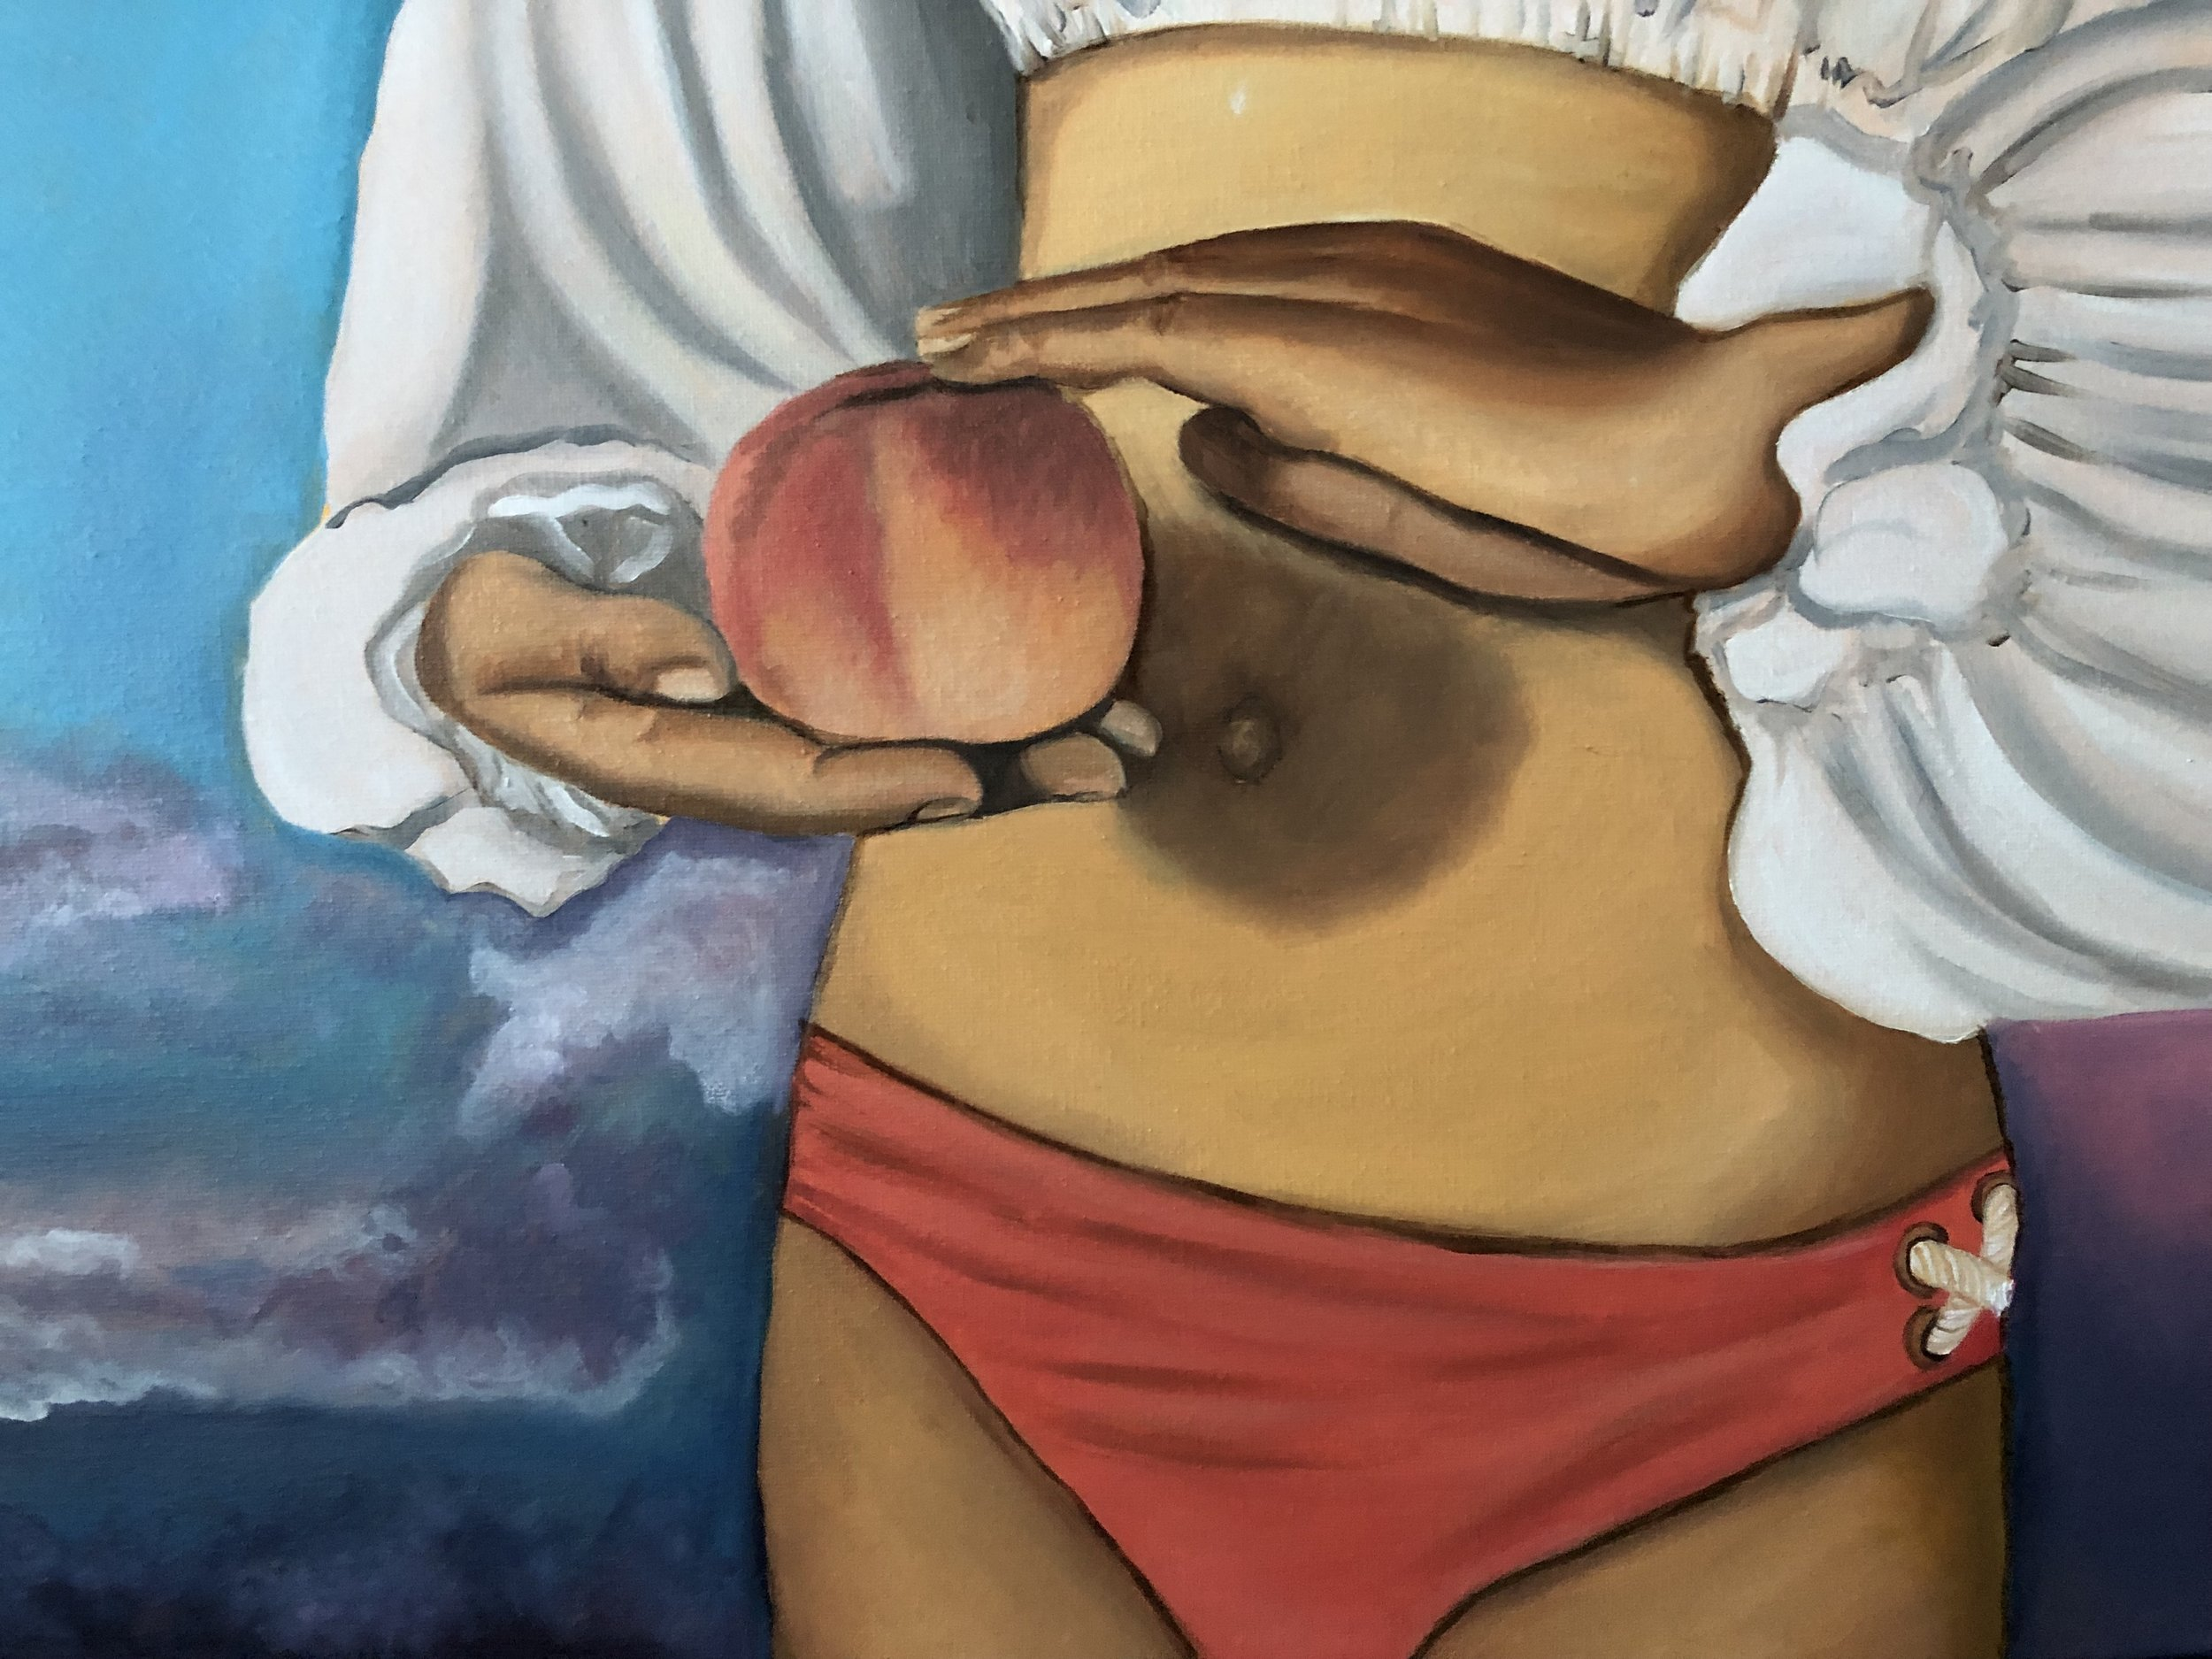 How to eat a peach (detail)